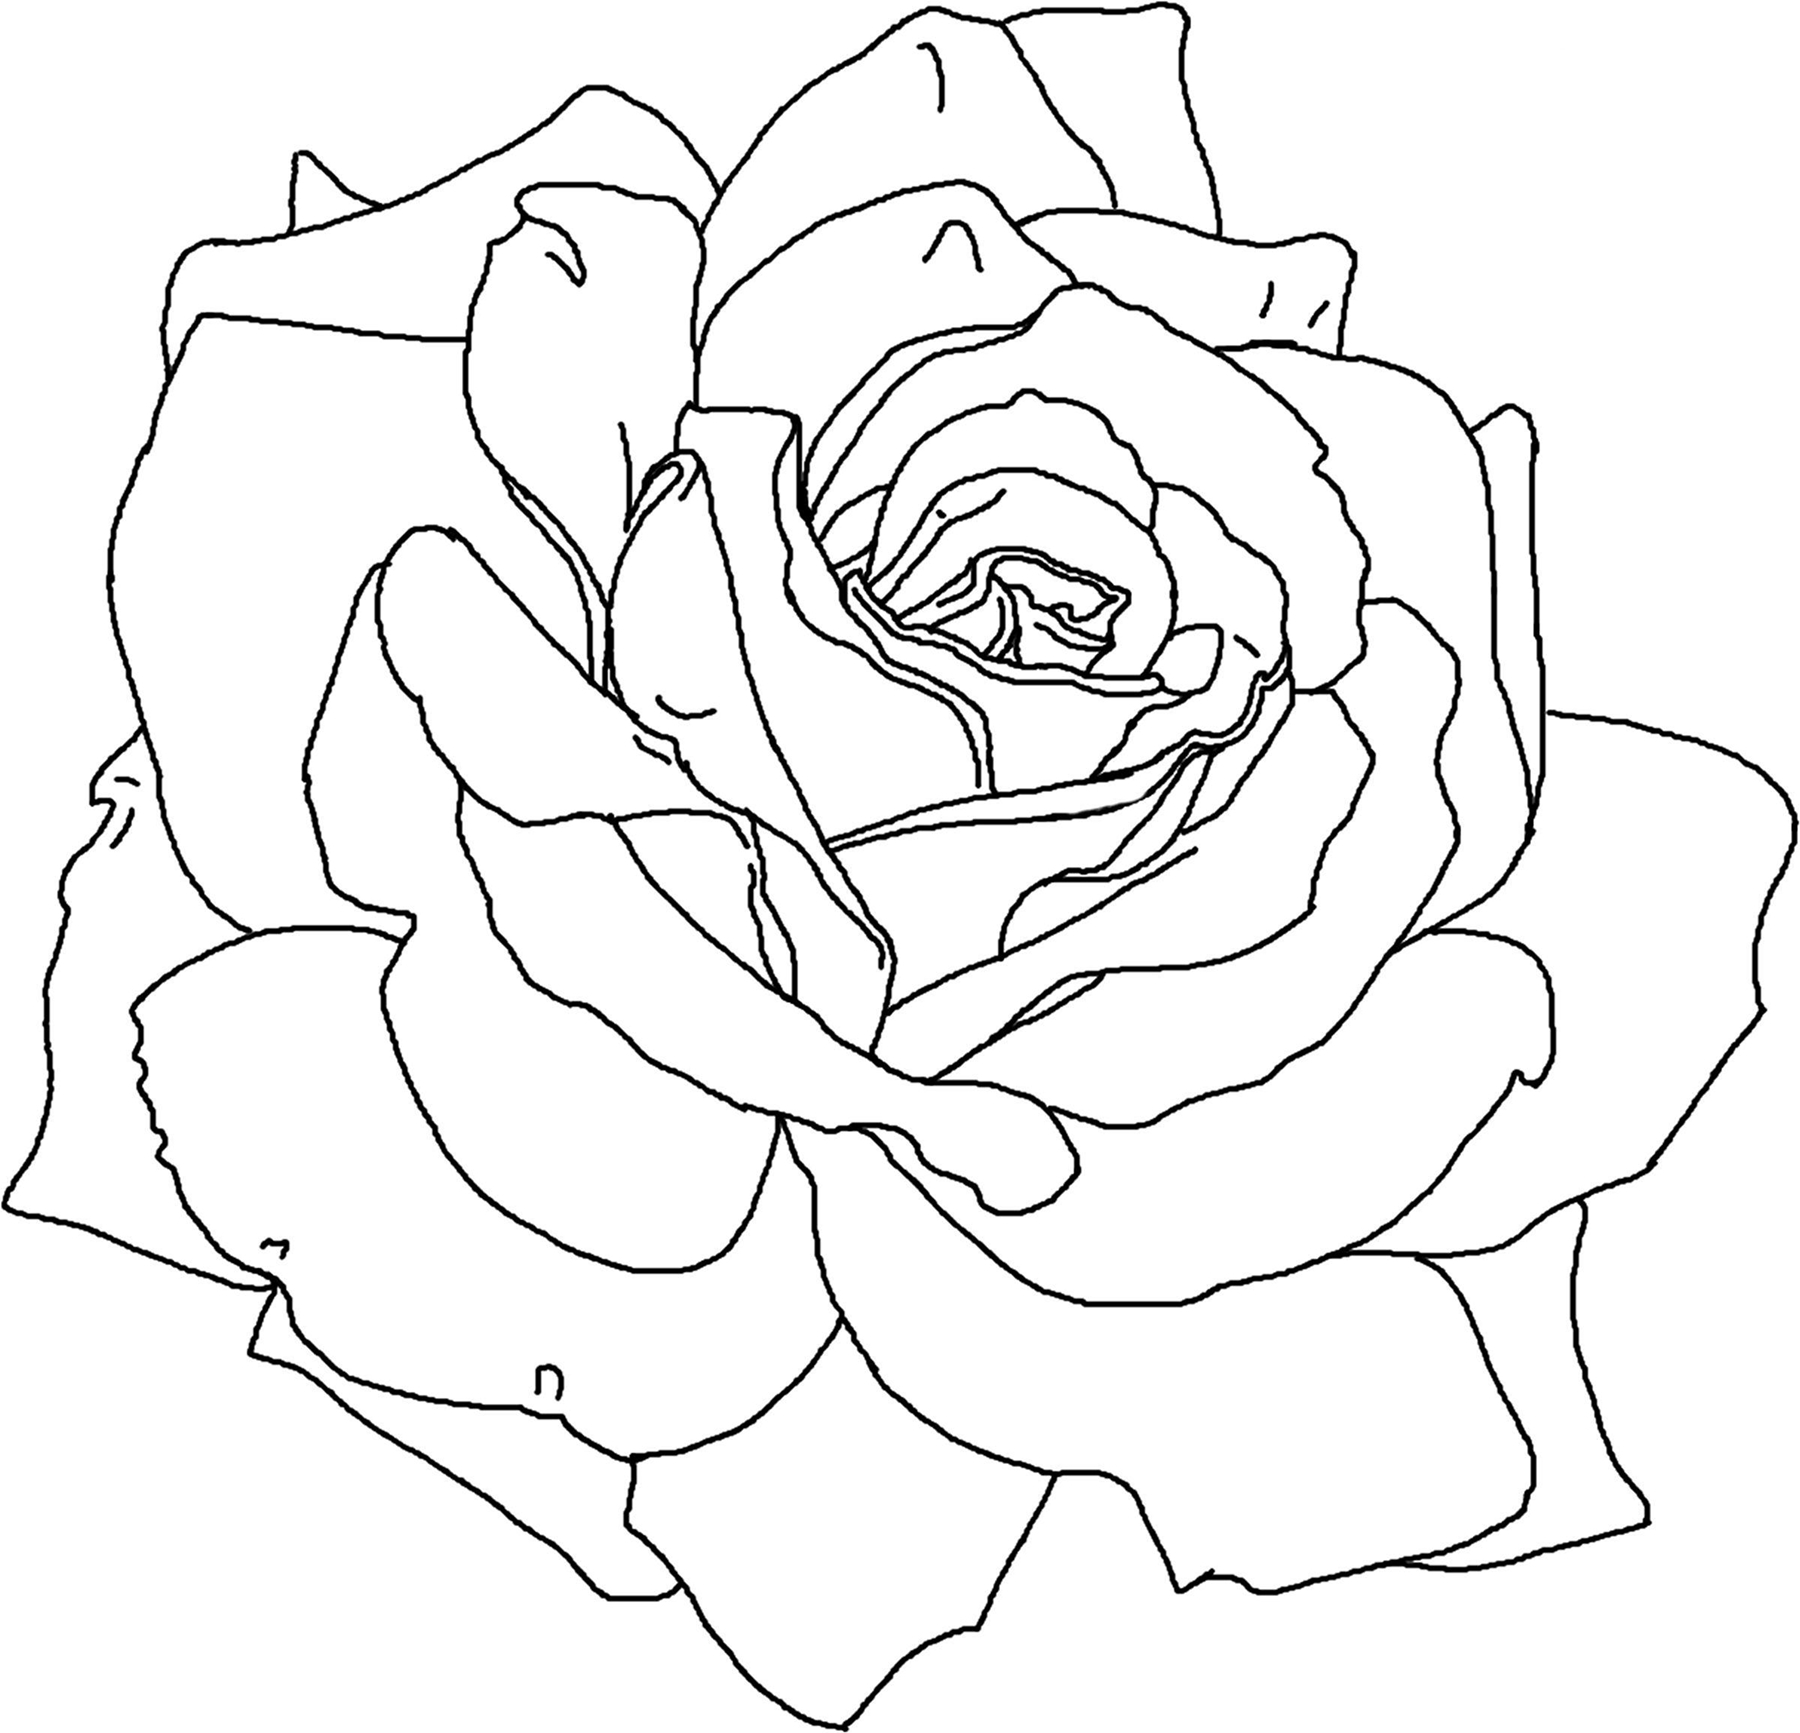 pictures of flowers to color free printables free free printable spring flowers coloring pages free of color to pictures flowers printables